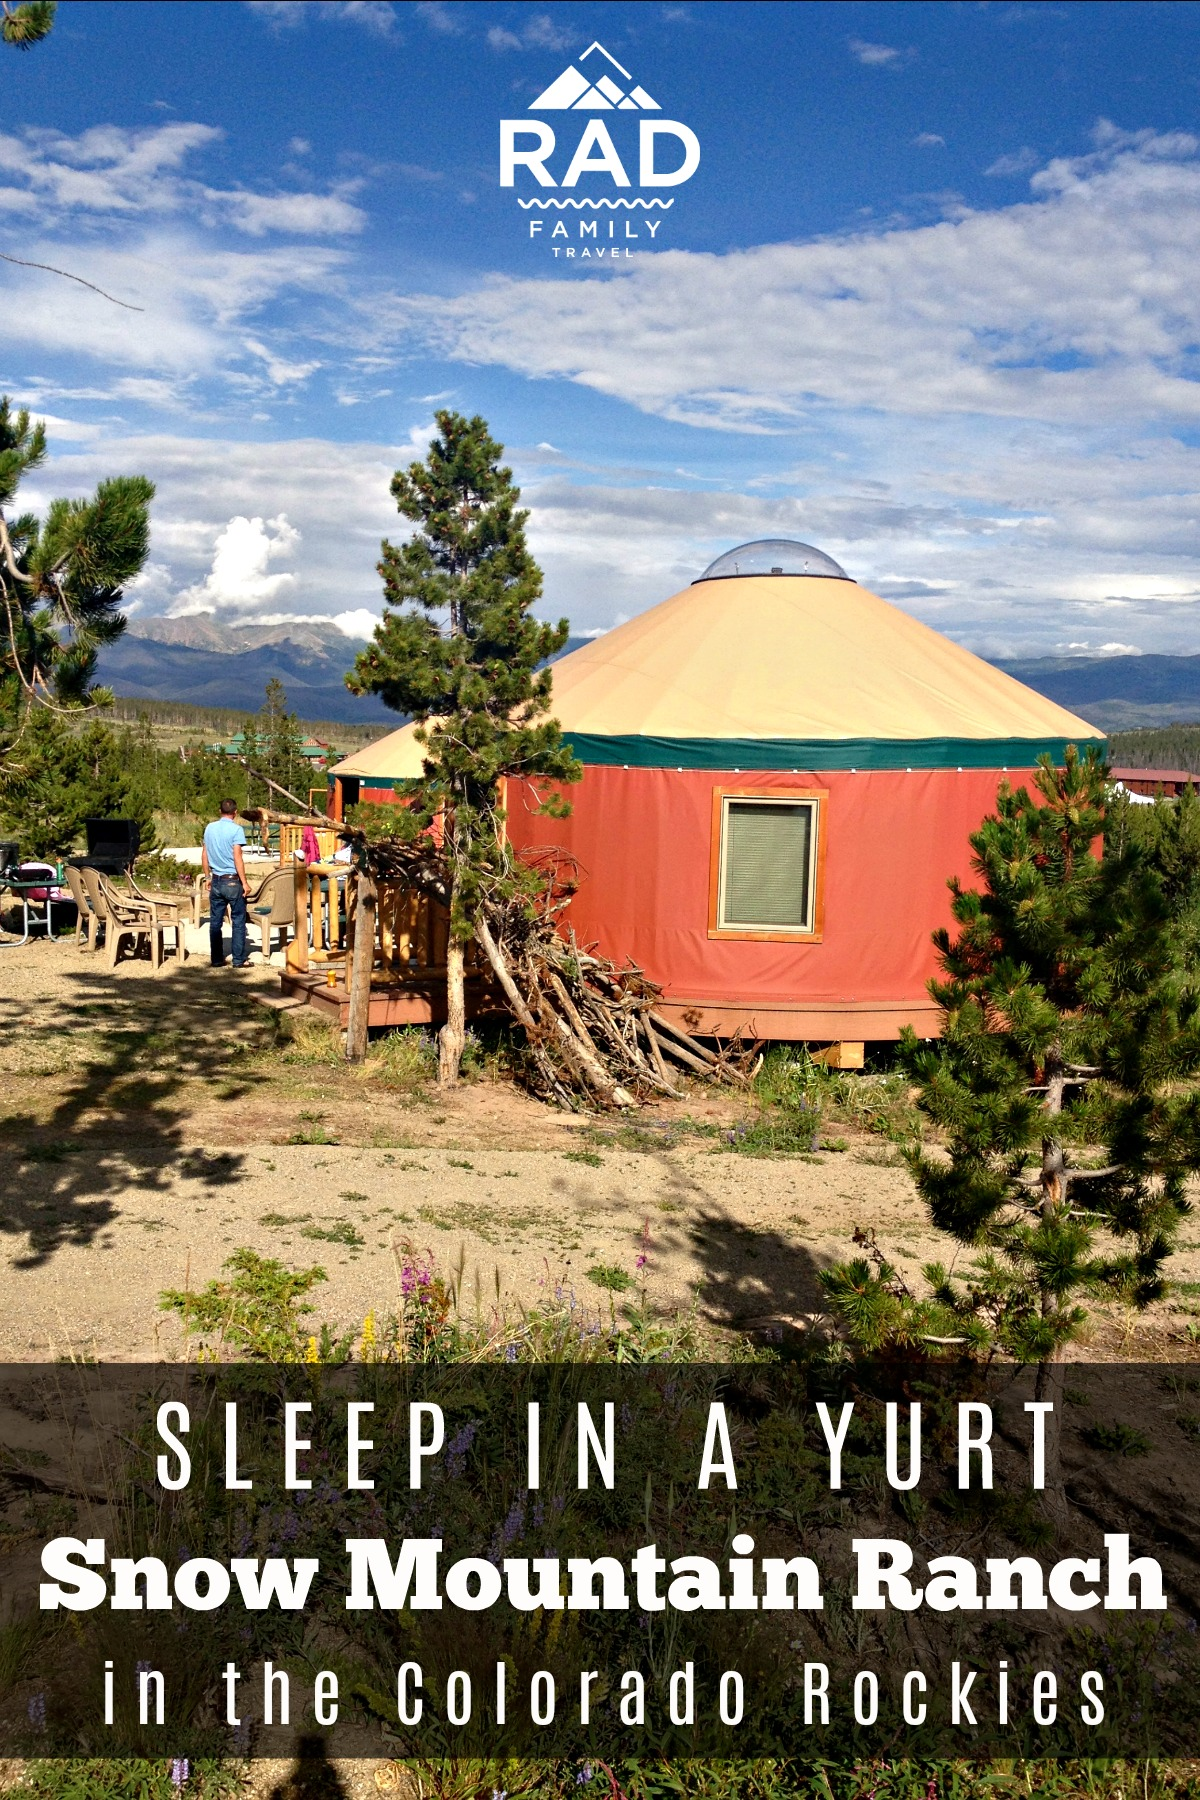 Snow Mountain Ranch Yurts In Colorado Rad Family Travel Find state of co homes_description_types_10_plu at the best price. rad family travel